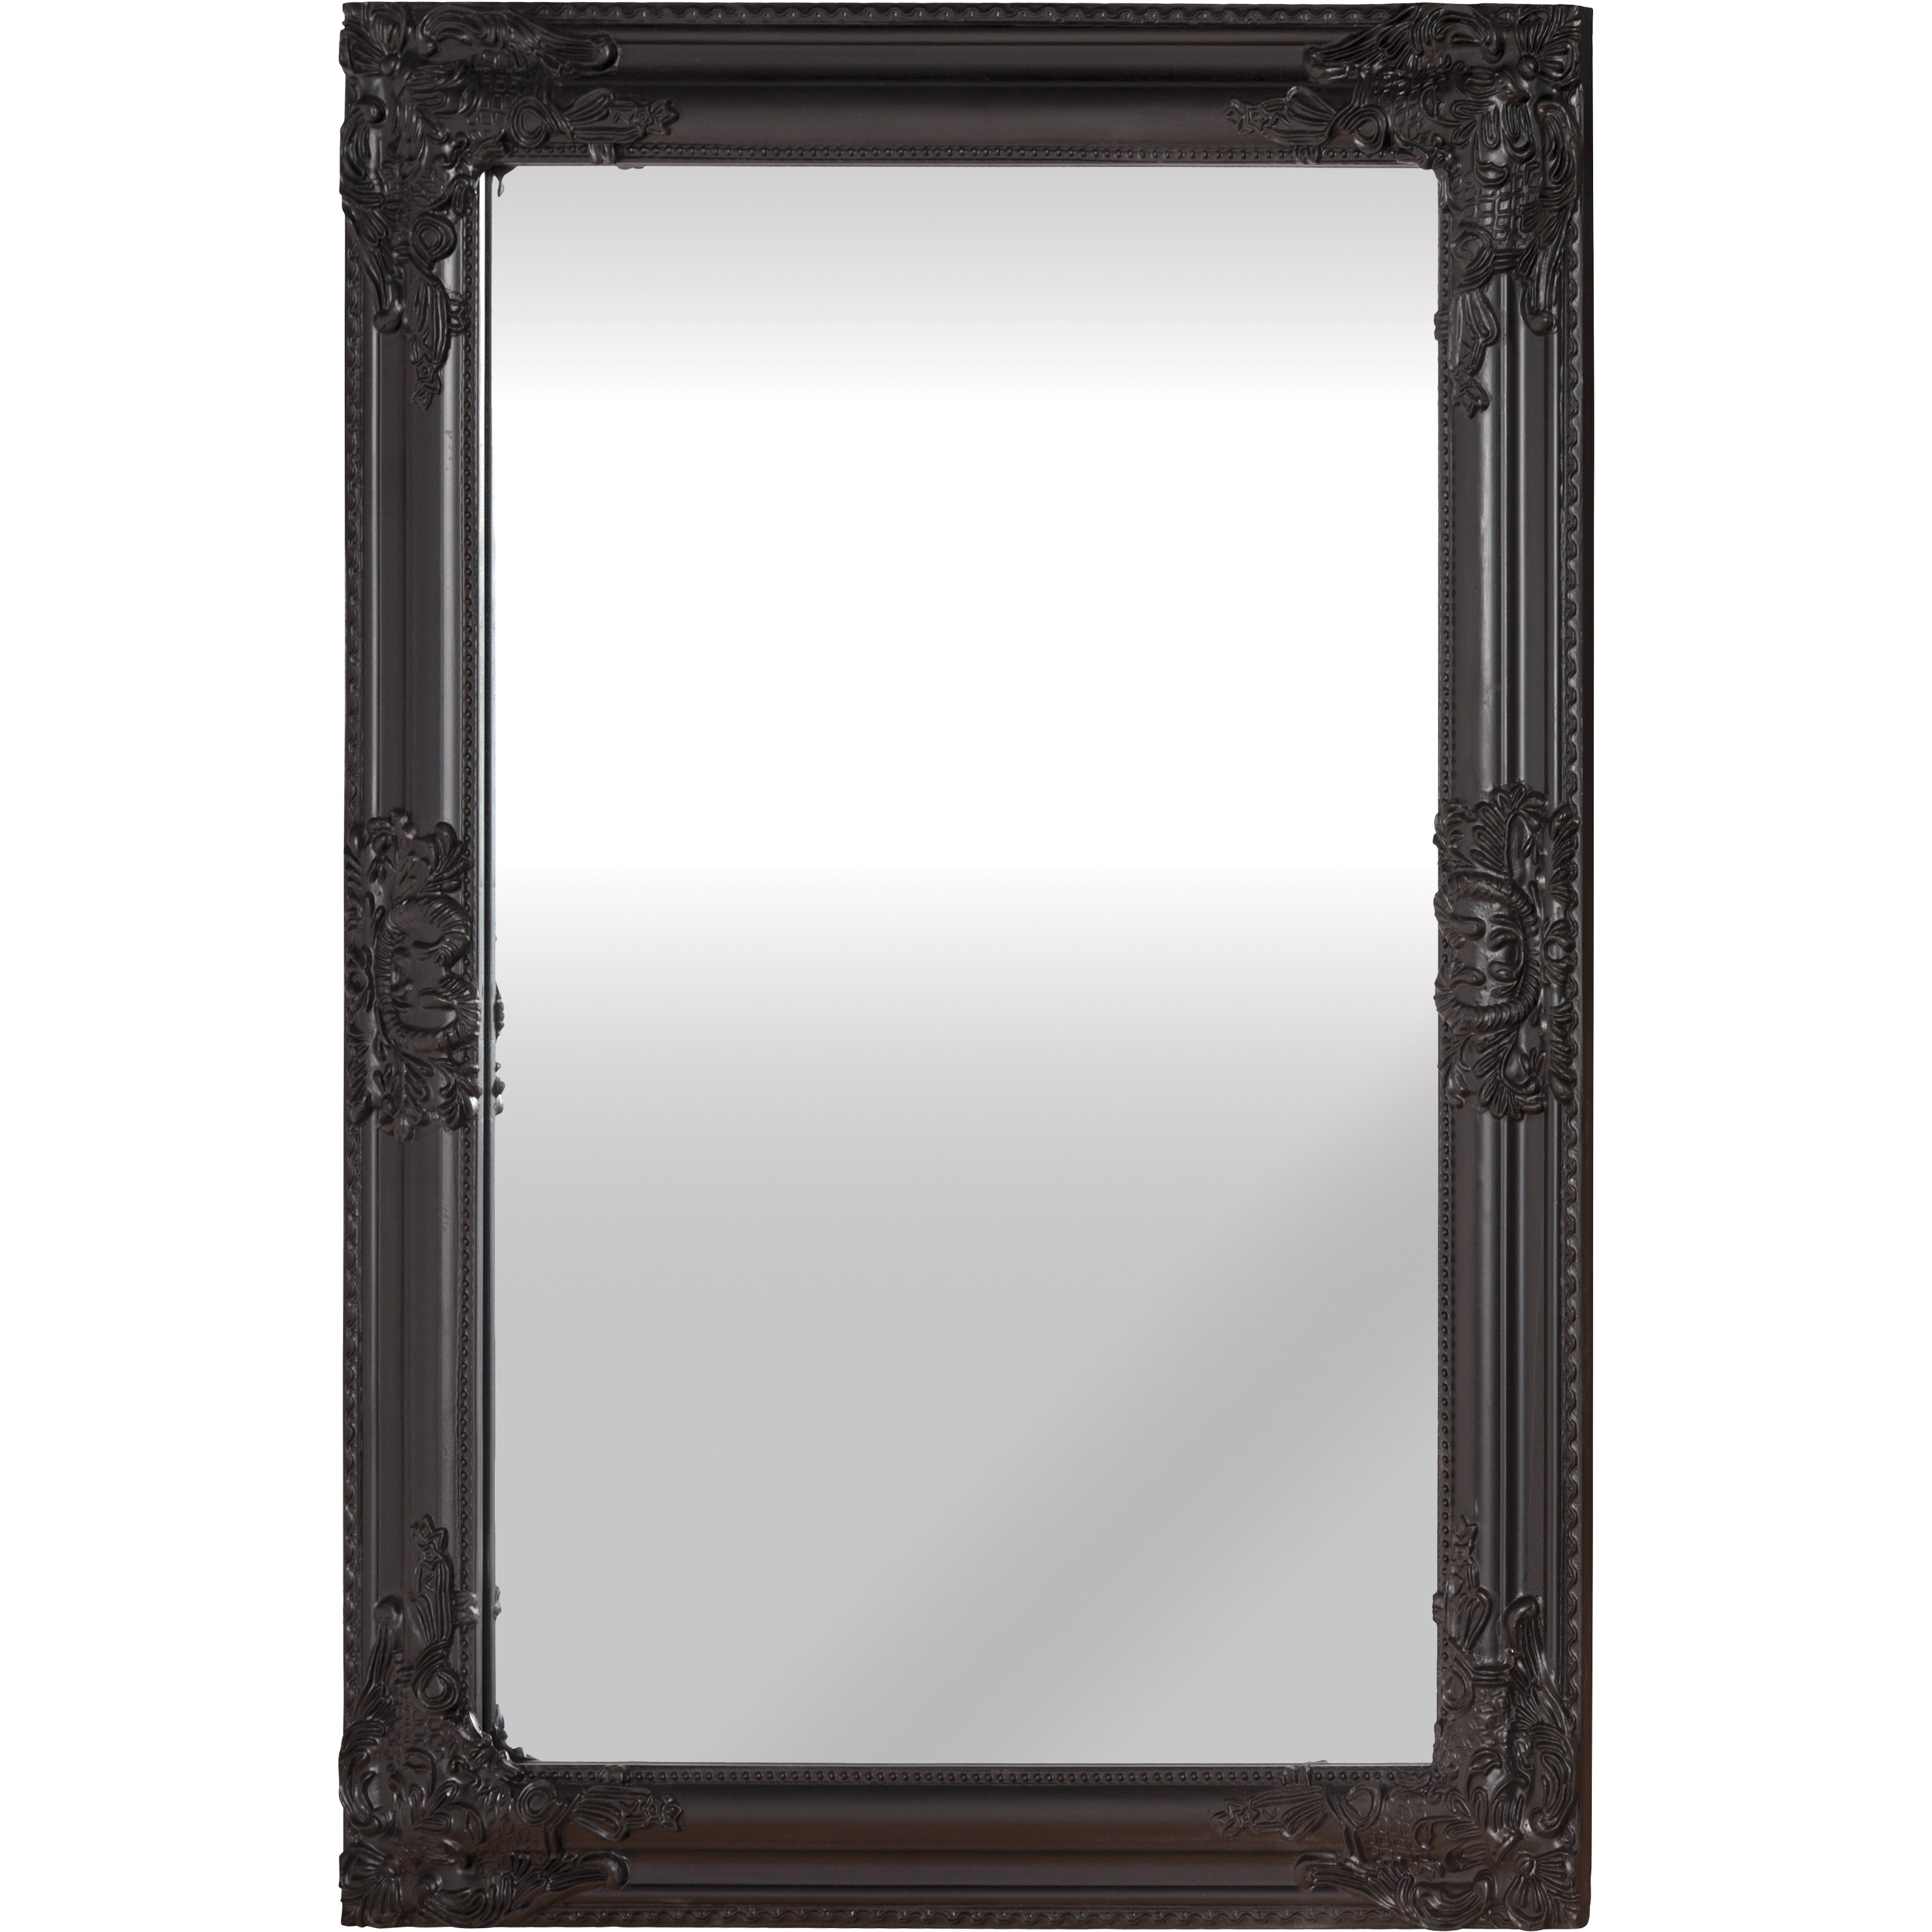 Mirror Black Intended For Antique Black Mirror (Image 11 of 15)